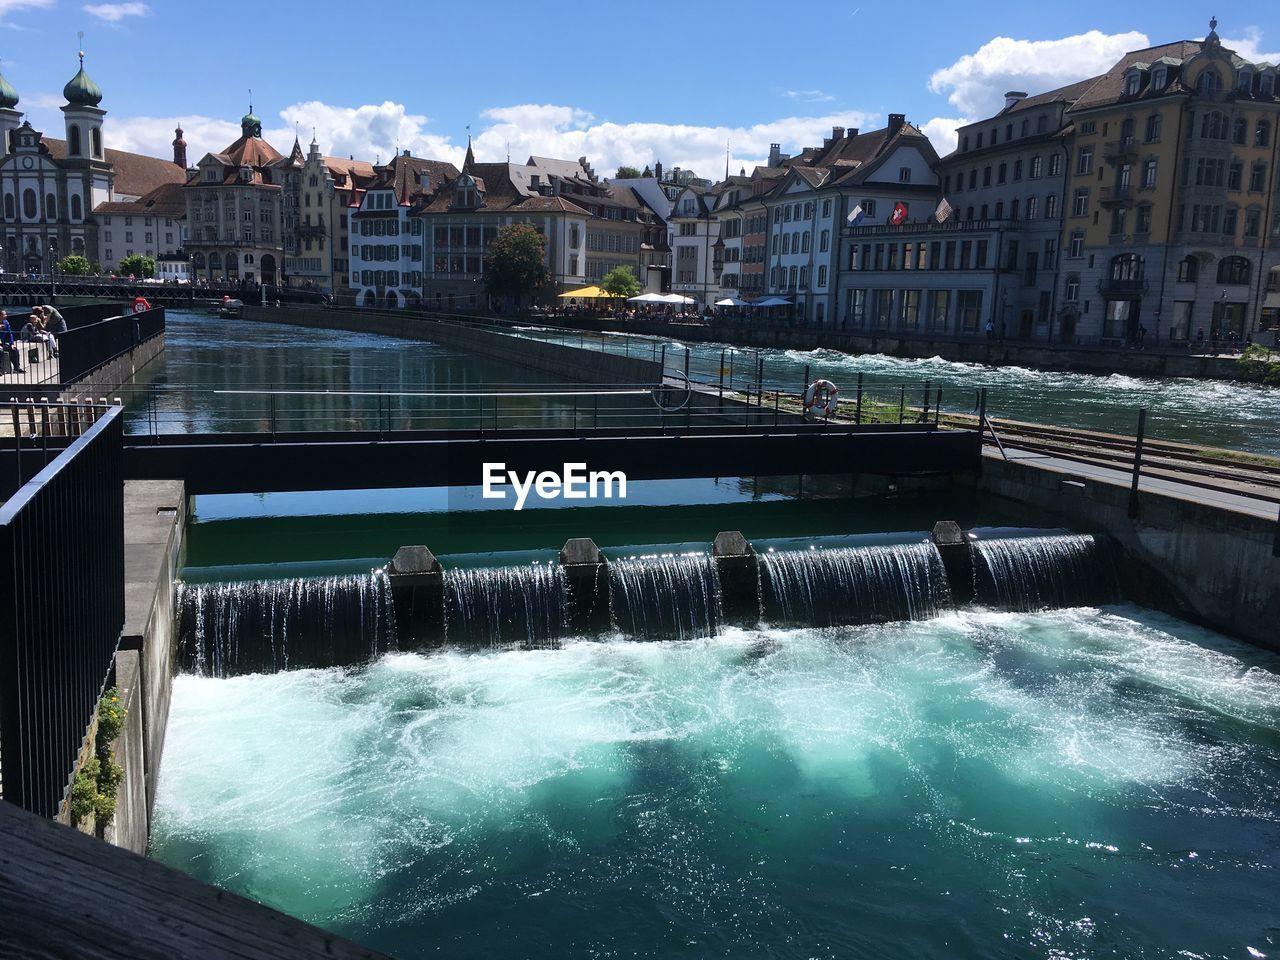 water, architecture, built structure, building exterior, nature, motion, sky, day, no people, dam, city, waterfront, flowing water, hydroelectric power, river, building, beauty in nature, outdoors, splashing, flowing, power in nature, swimming pool